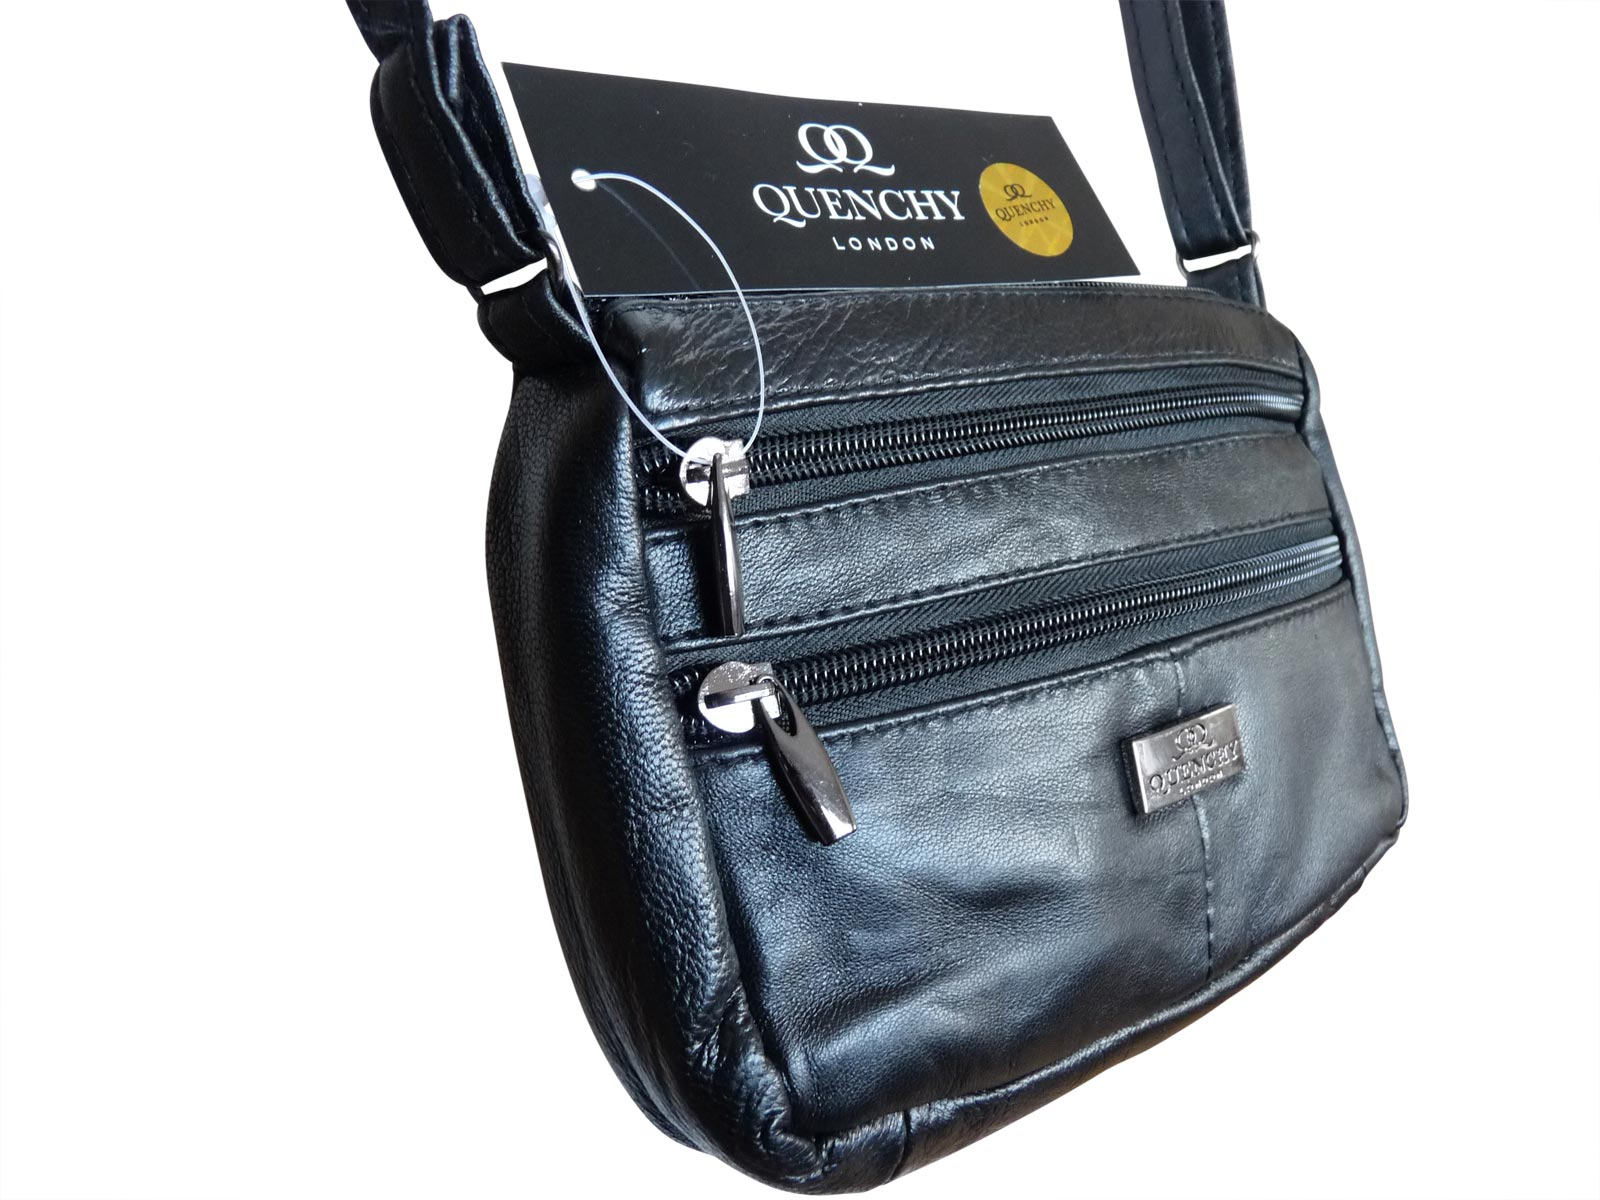 Small Leather Shoulder Bag Travel Pouch QL945